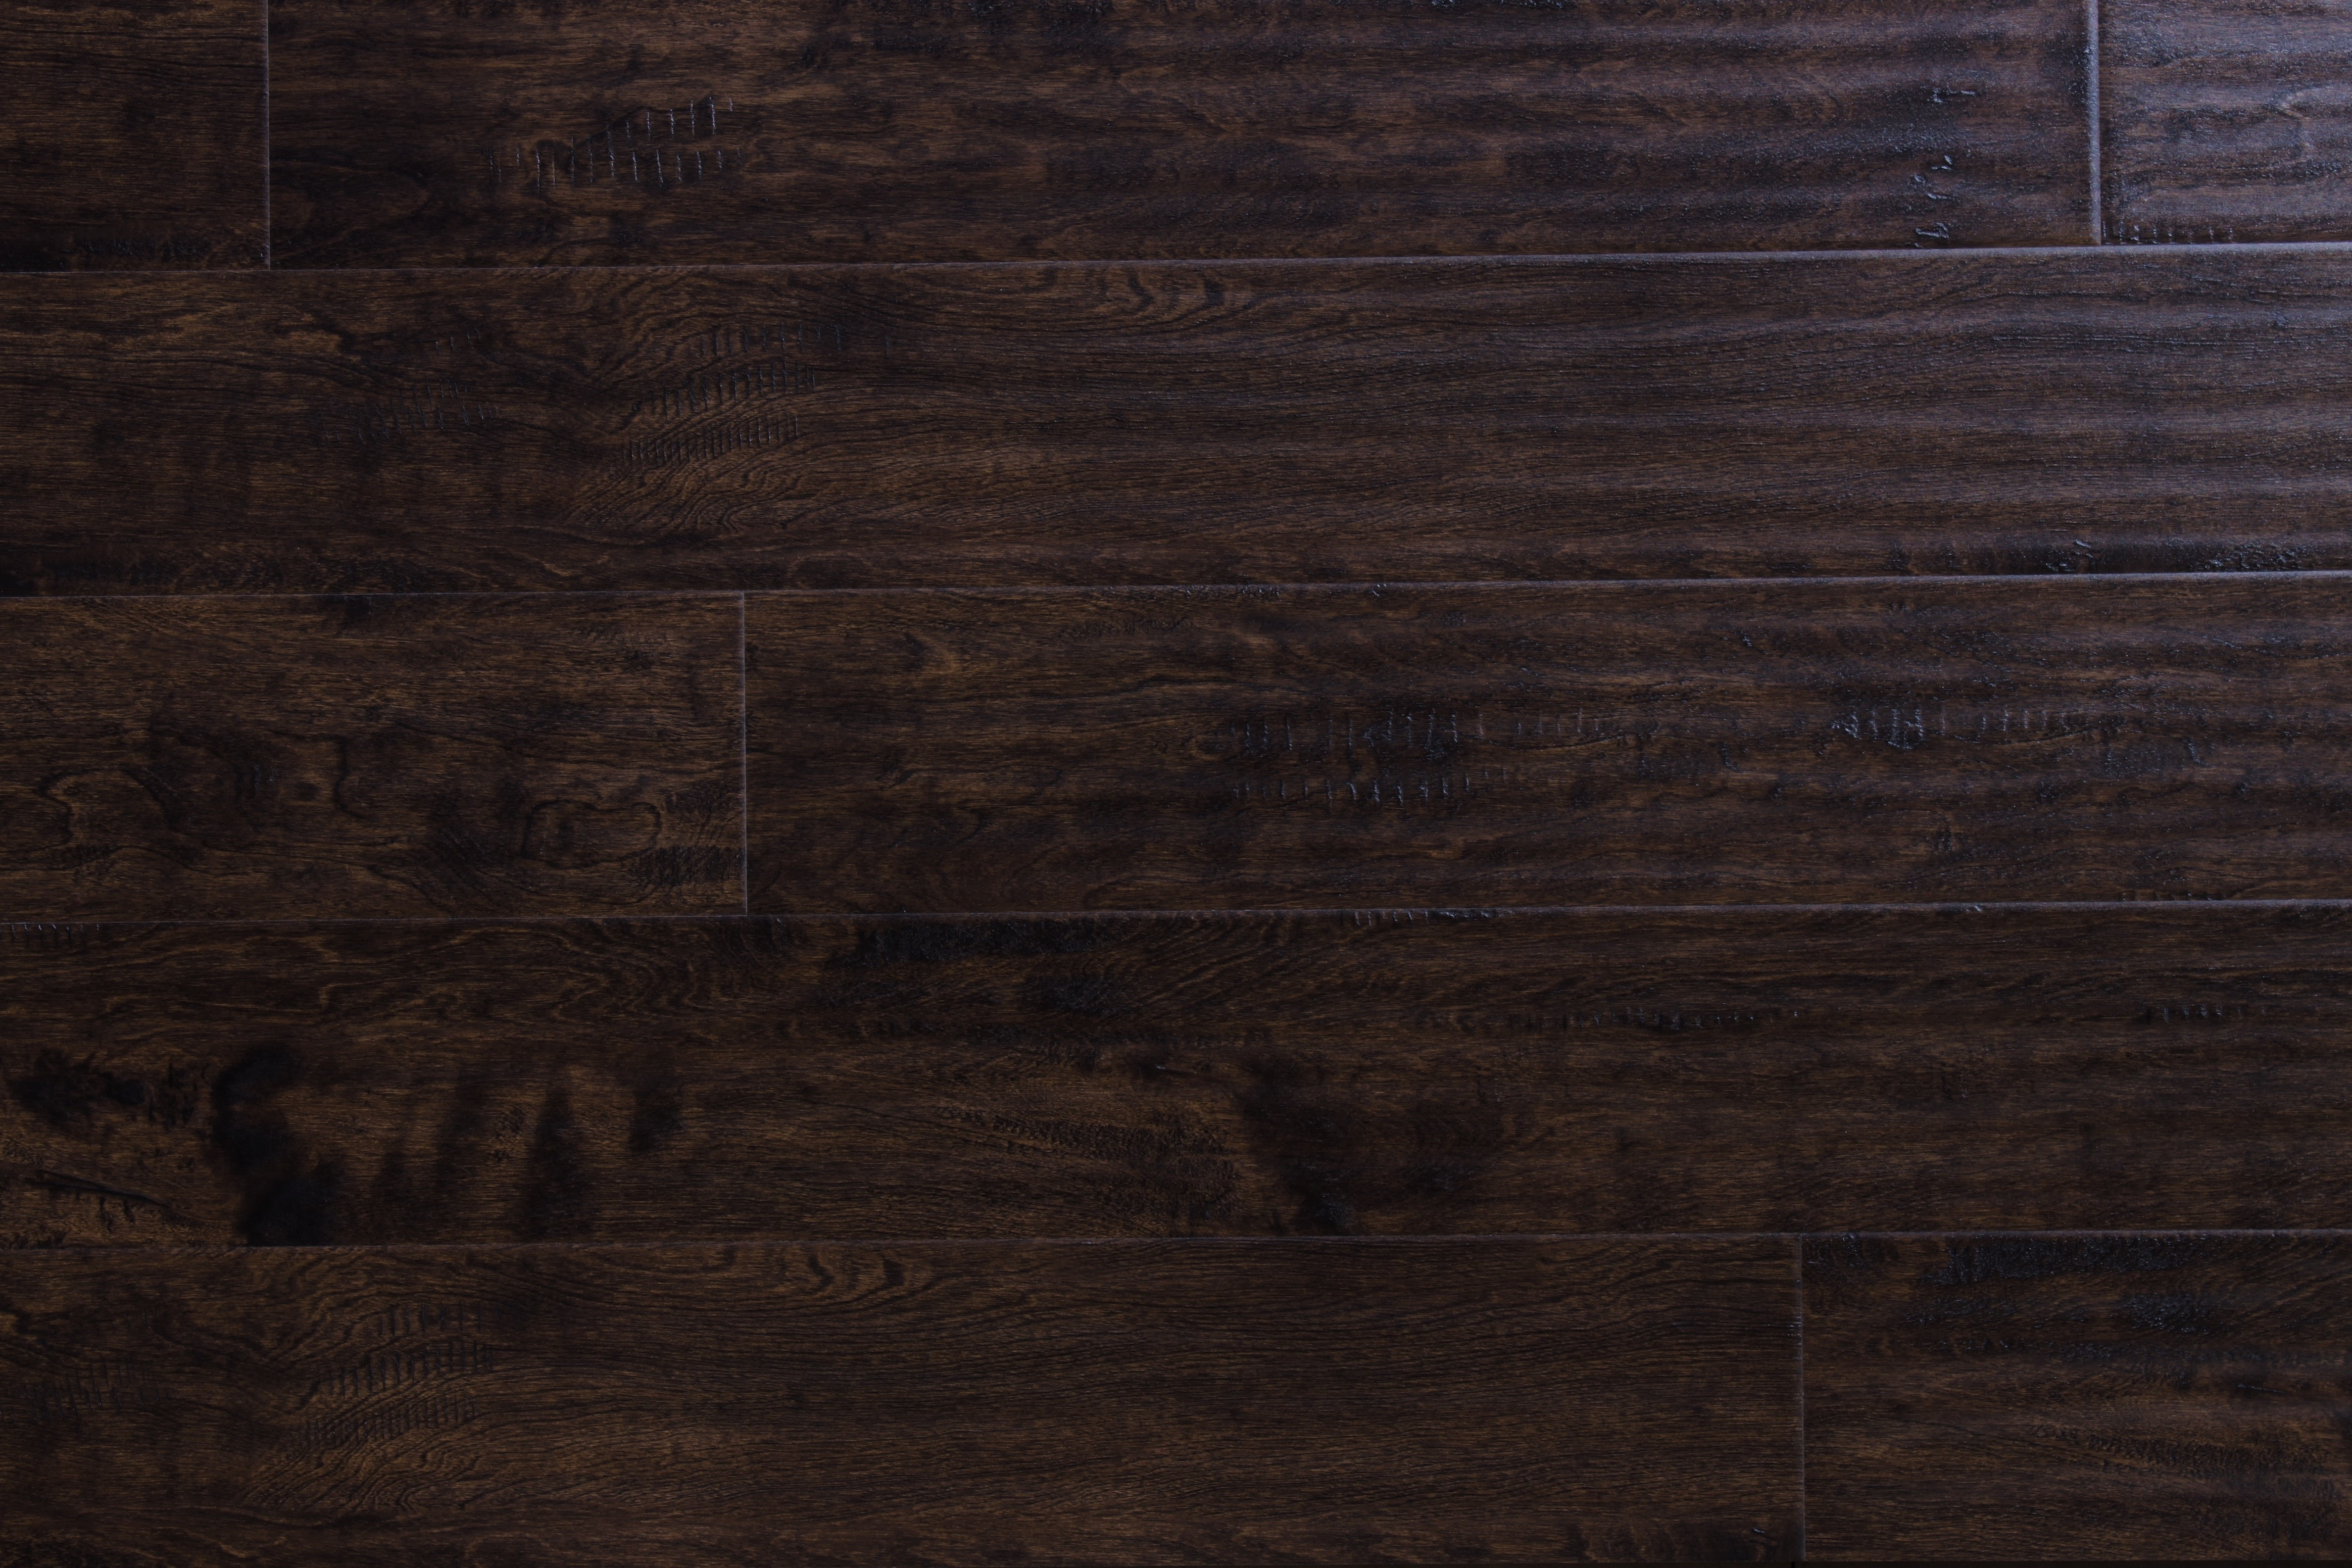 laminate flooring vs engineered hardwood cost of wood flooring free samples available at builddirecta with regard to tailor multi gb 5874277bb8d3c